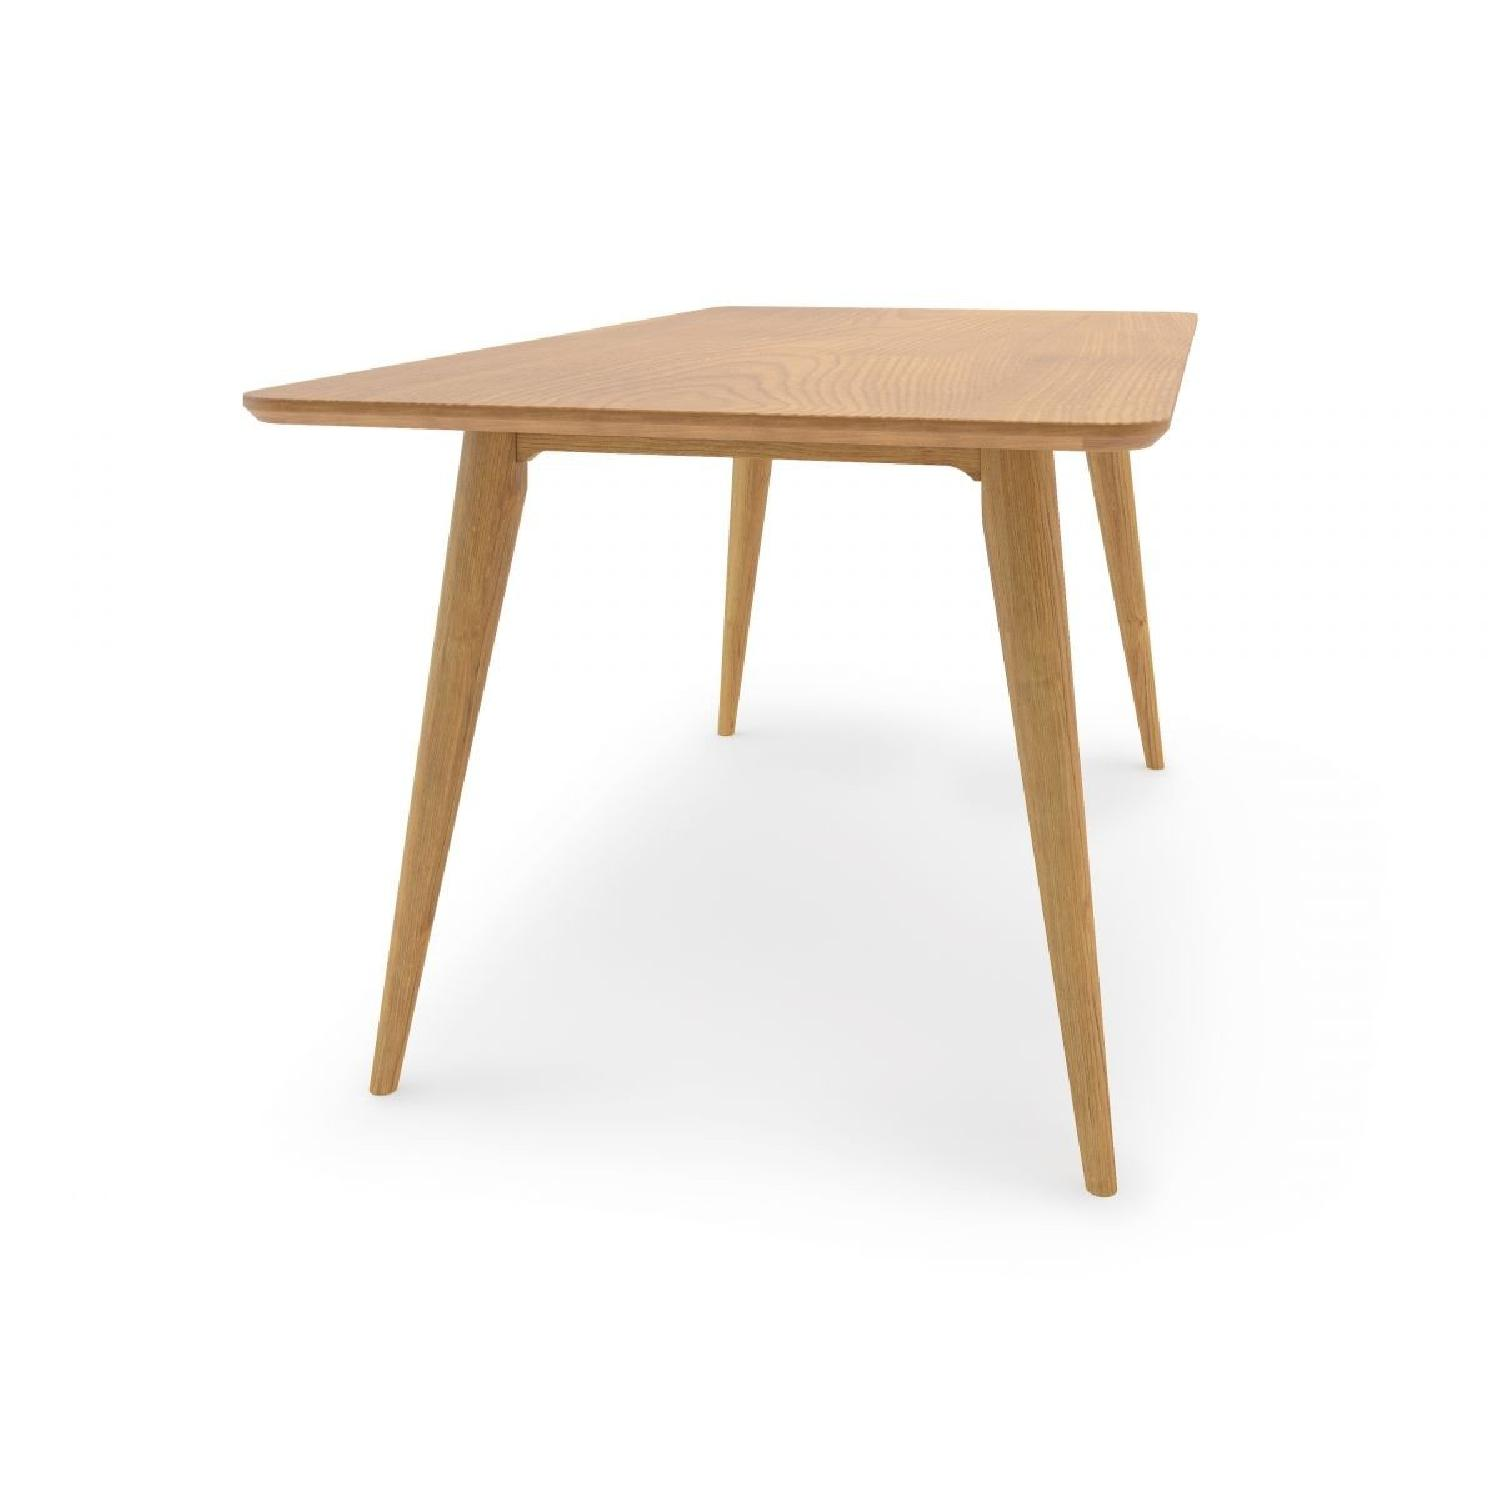 Rove Concepts Sven Dining Table - image-3